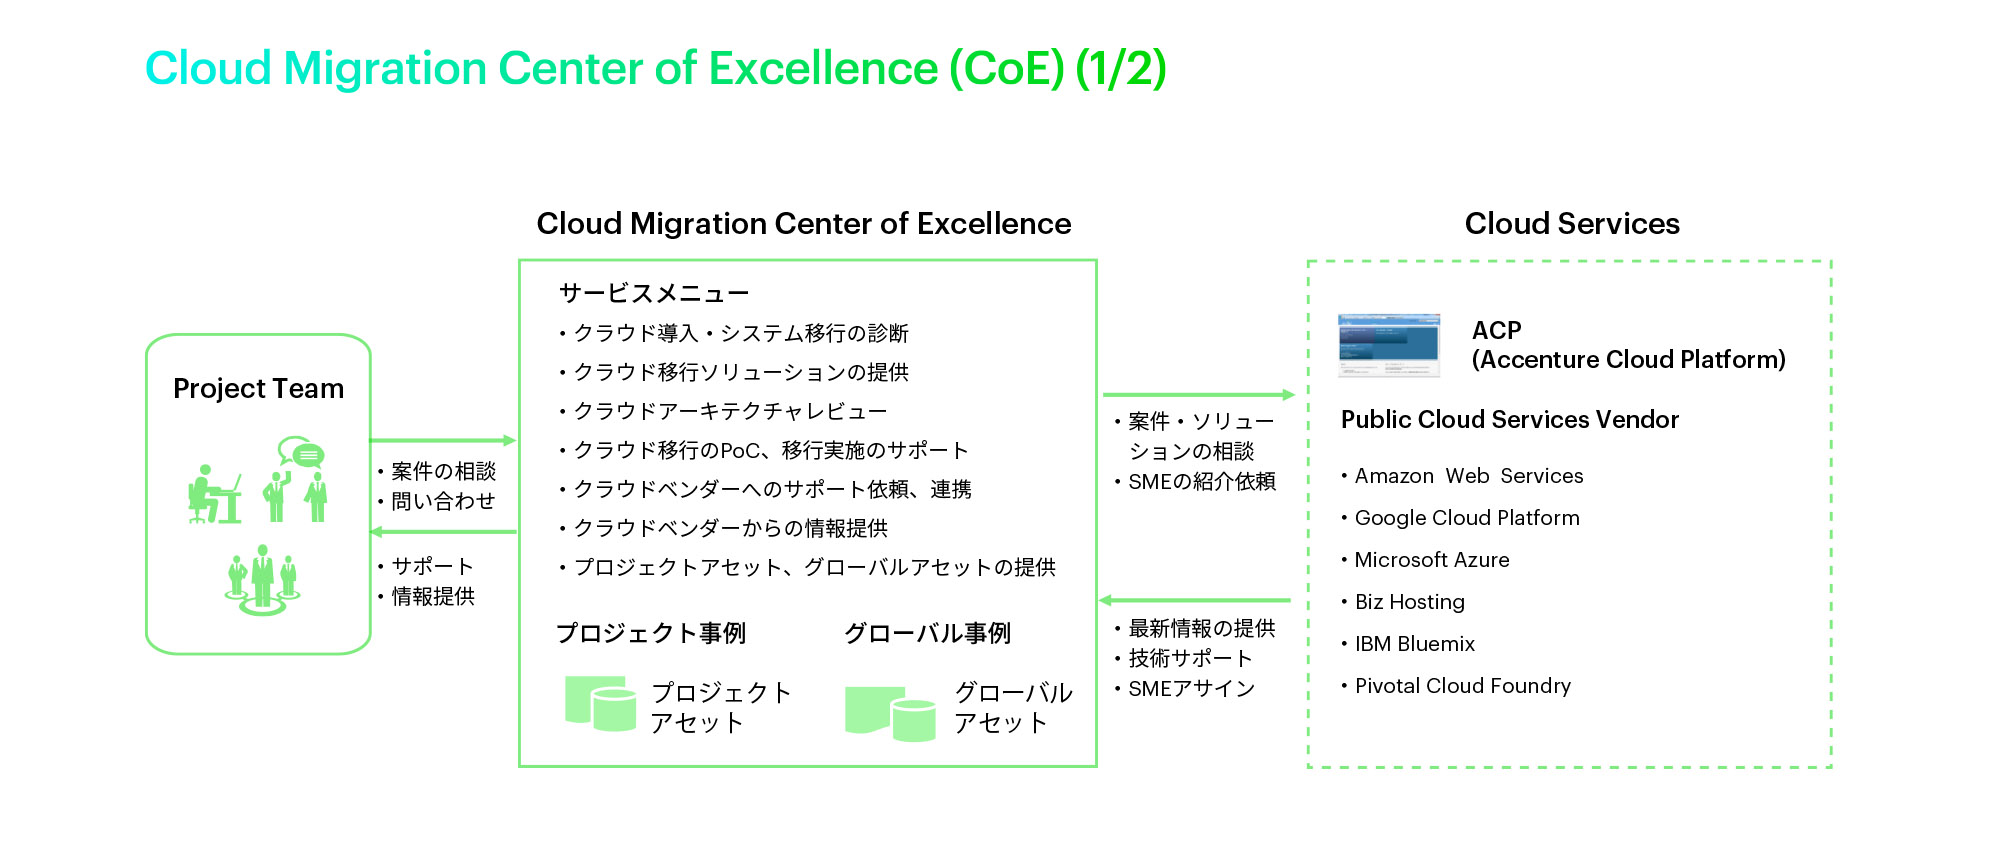 Cloud Migration Center of Excellence (CoE)(1/2)